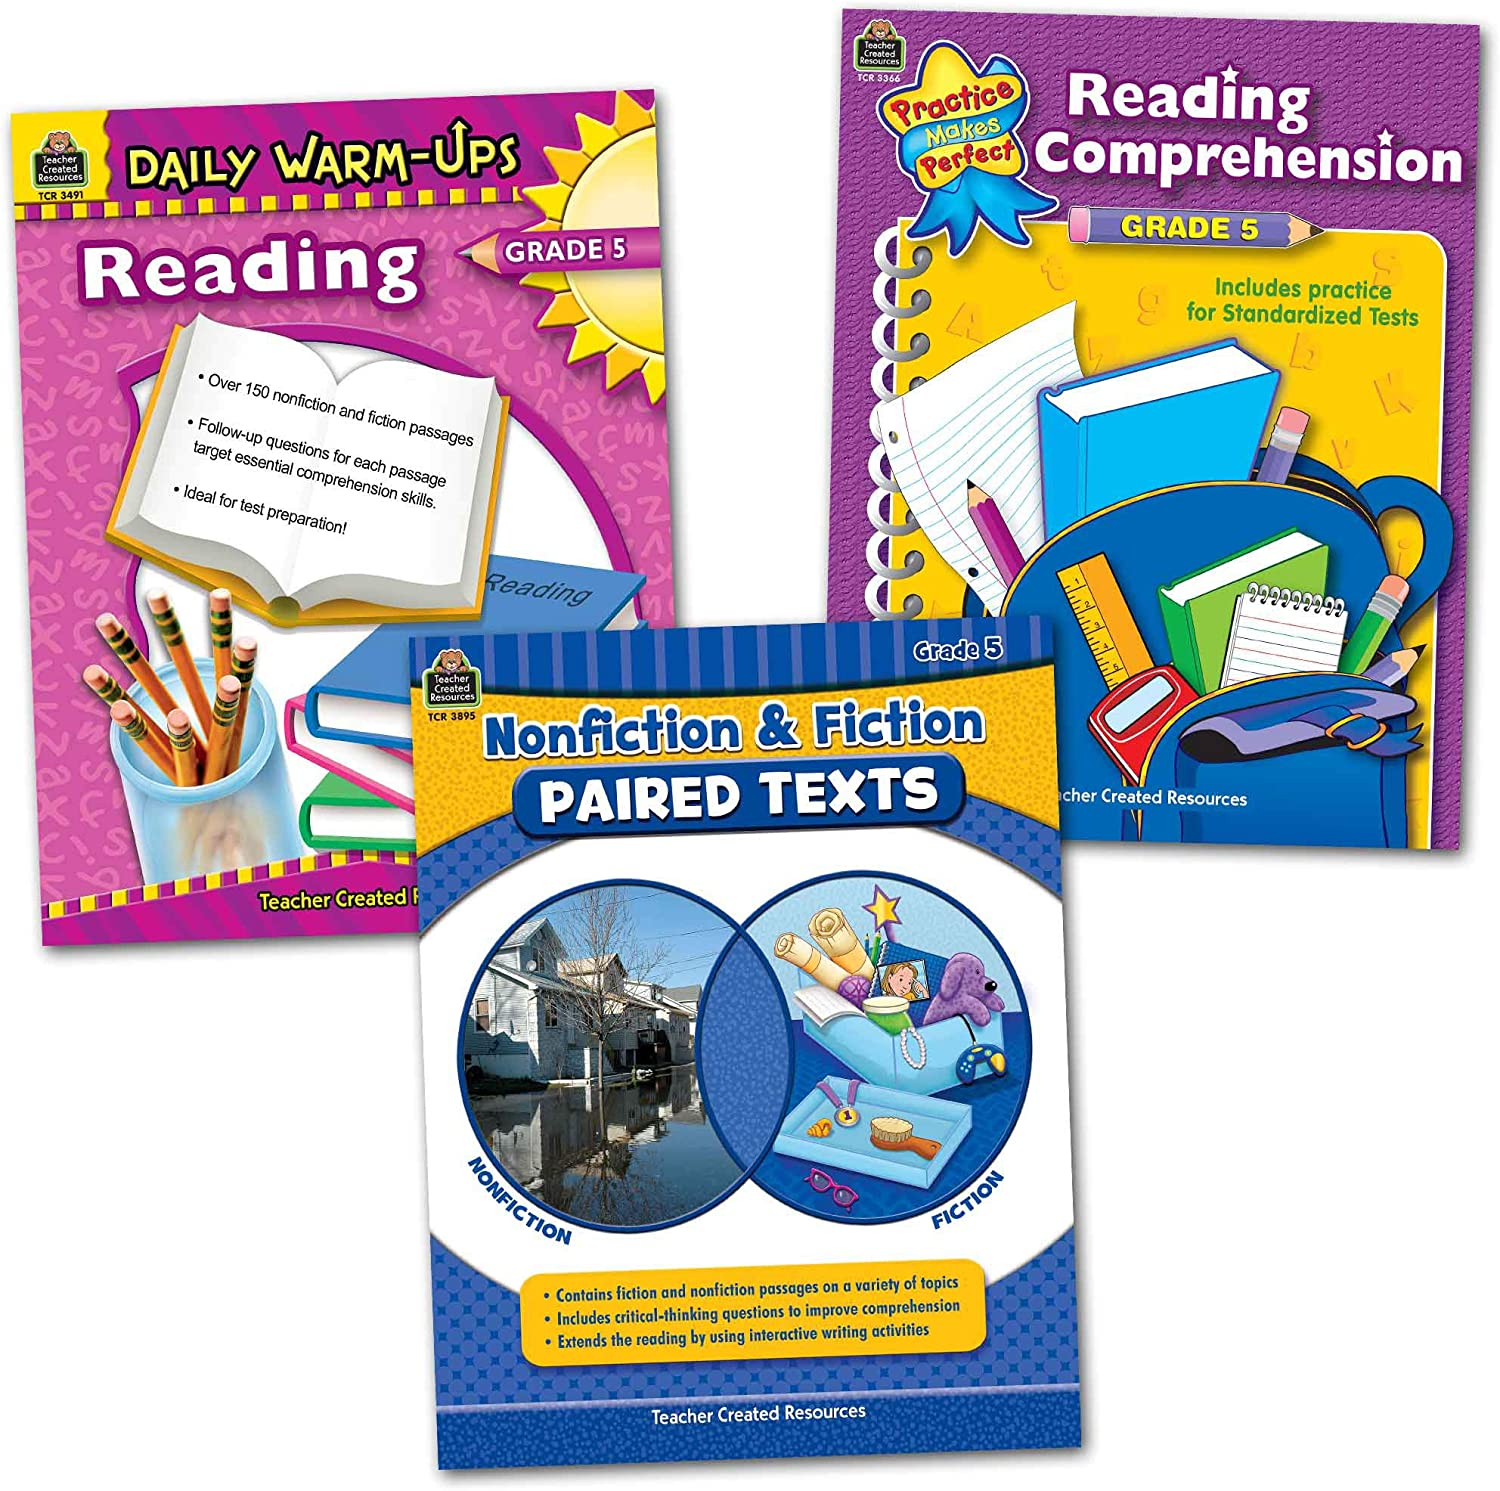 Teacher Created Resources Learning Together: Reading Grade 5